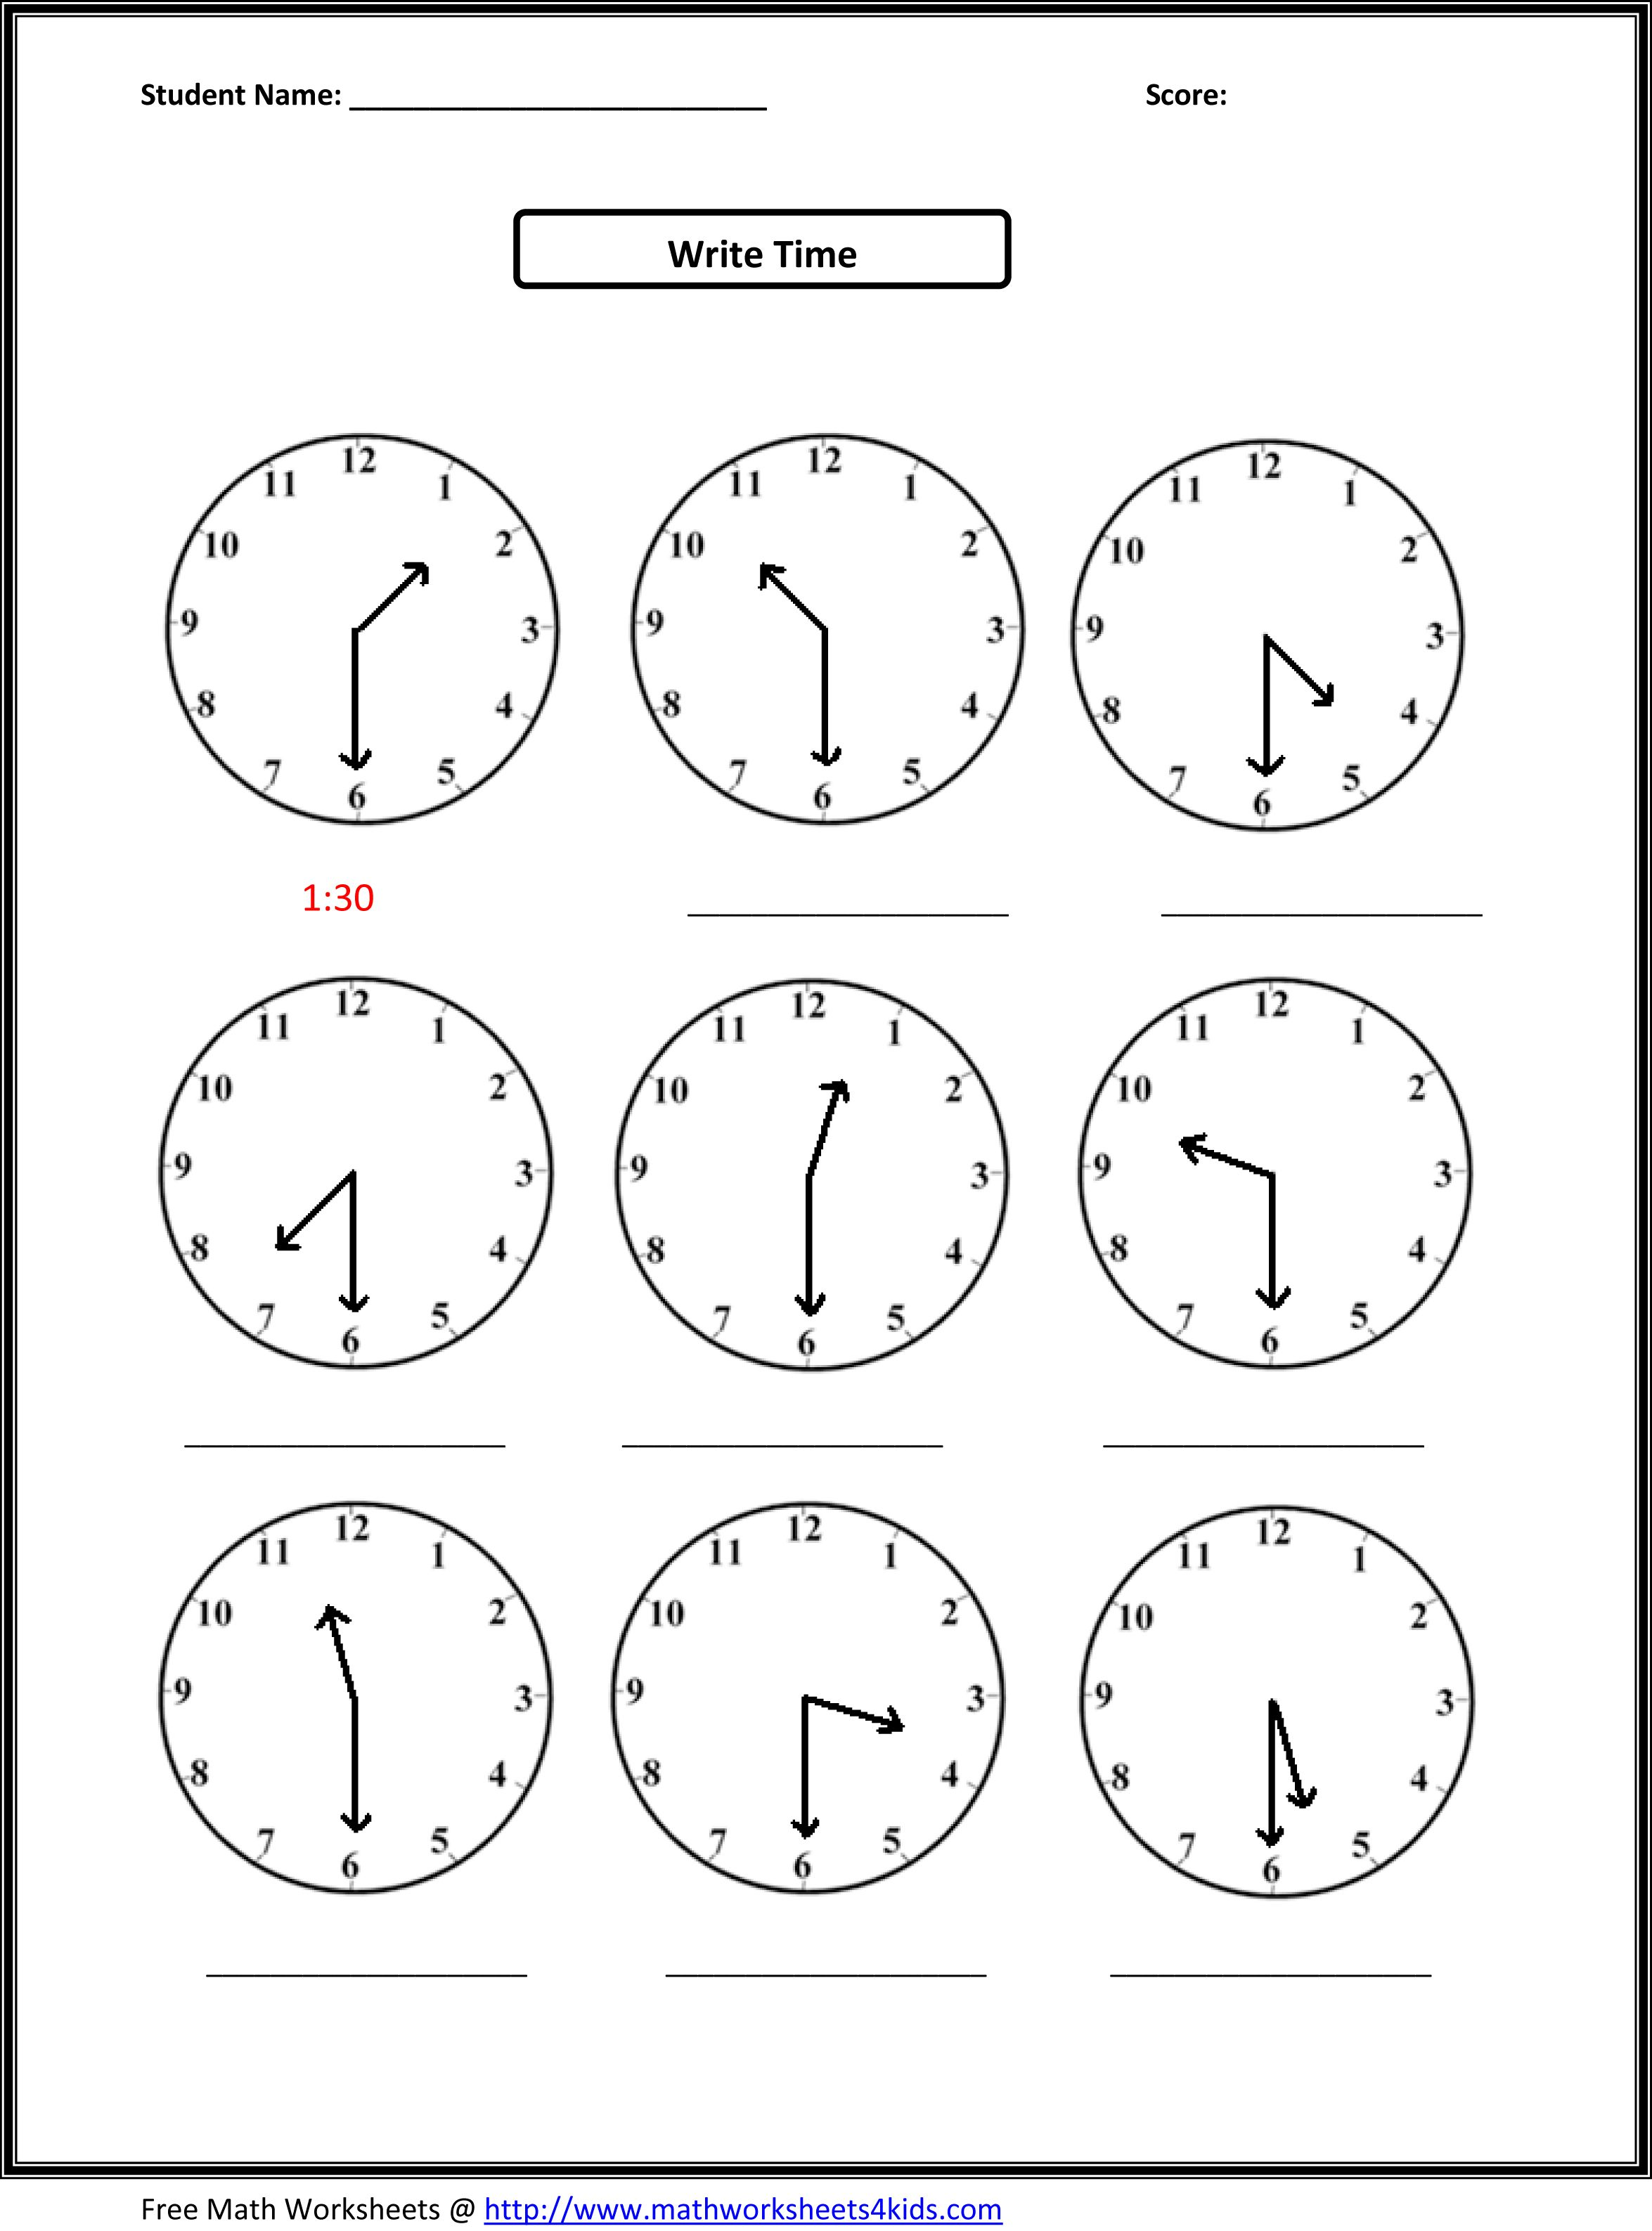 Proatmealus  Pretty Worksheet On Time For Grade   Reocurent With Interesting Free Printable Telling Time Worksheets Nd Grade  Reocurent With Charming Biography Questions Worksheet Also Getting To Know Me Worksheet In Addition Imaginary Number Worksheet And Adding  Numbers Worksheet As Well As Converting Fractions Into Decimals Worksheets Additionally Native American Worksheet From Reocurentcom With Proatmealus  Interesting Worksheet On Time For Grade   Reocurent With Charming Free Printable Telling Time Worksheets Nd Grade  Reocurent And Pretty Biography Questions Worksheet Also Getting To Know Me Worksheet In Addition Imaginary Number Worksheet From Reocurentcom